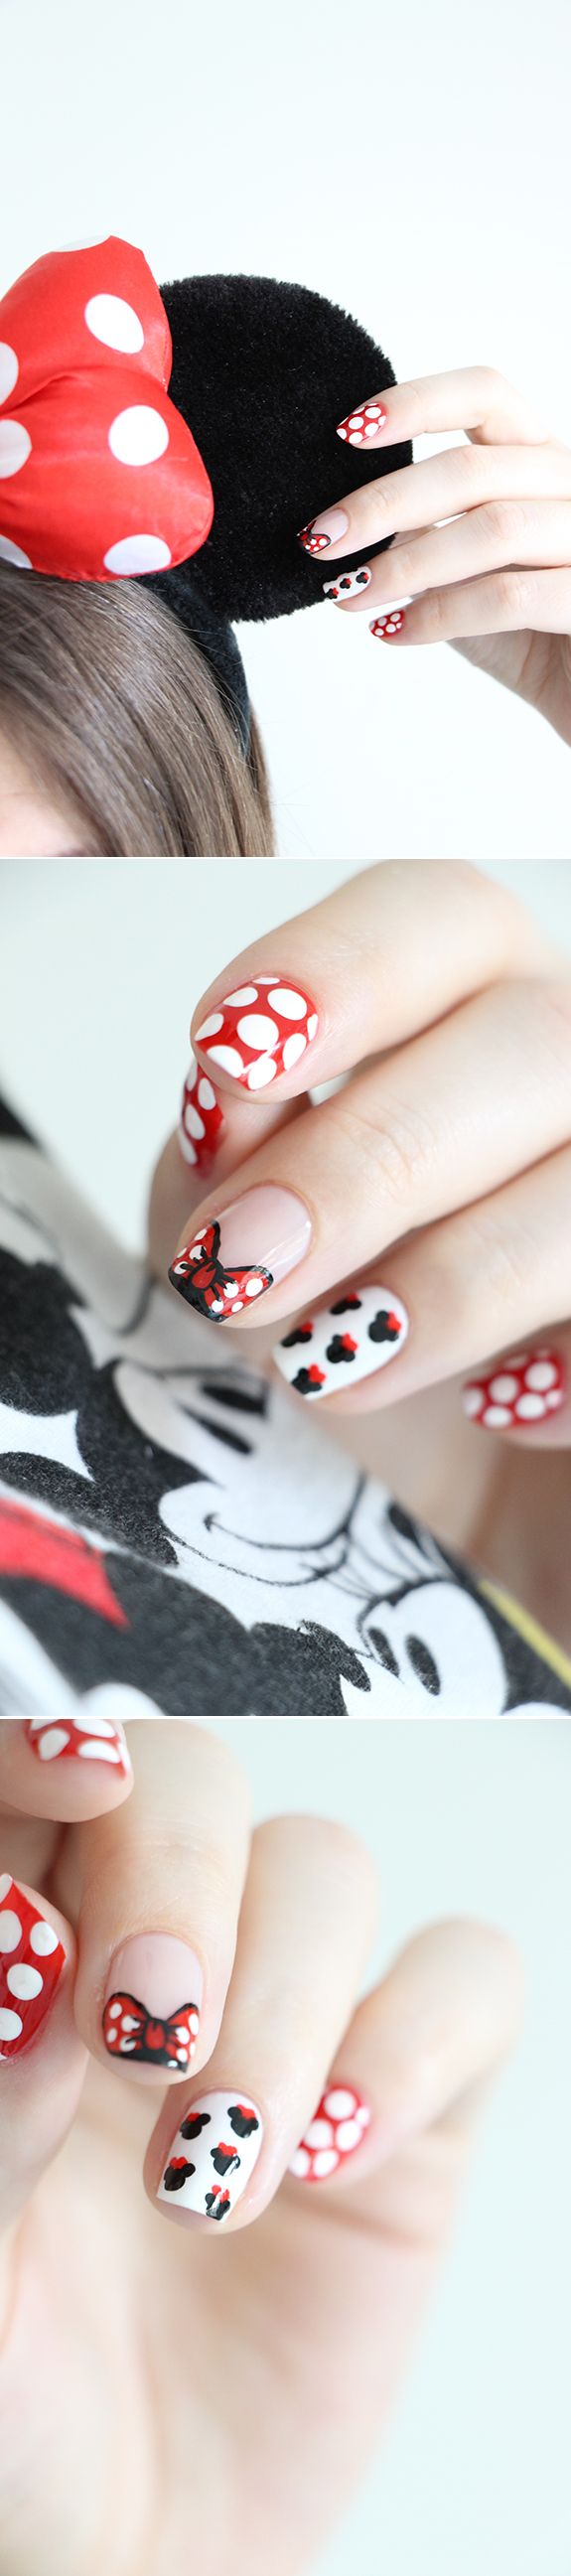 minnie-nails-2